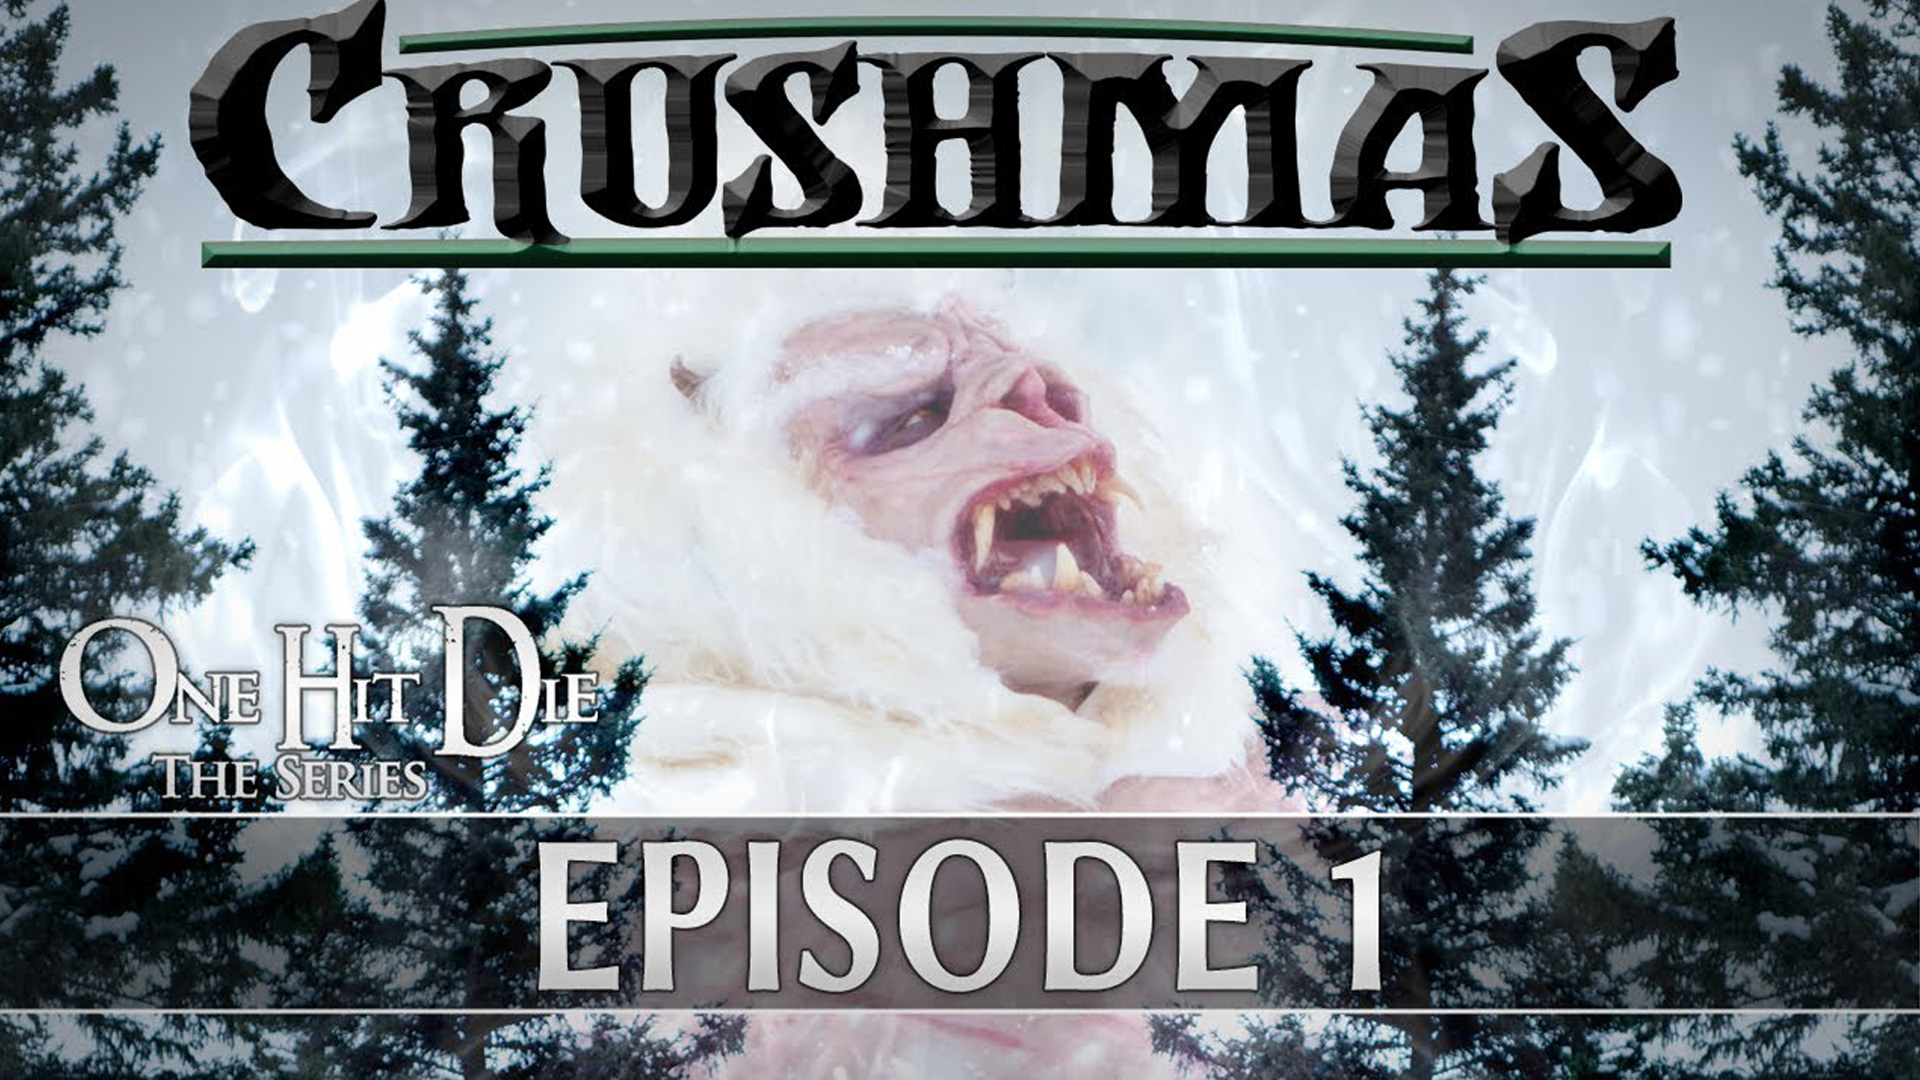 One Hit Die Crushmas Episode 1